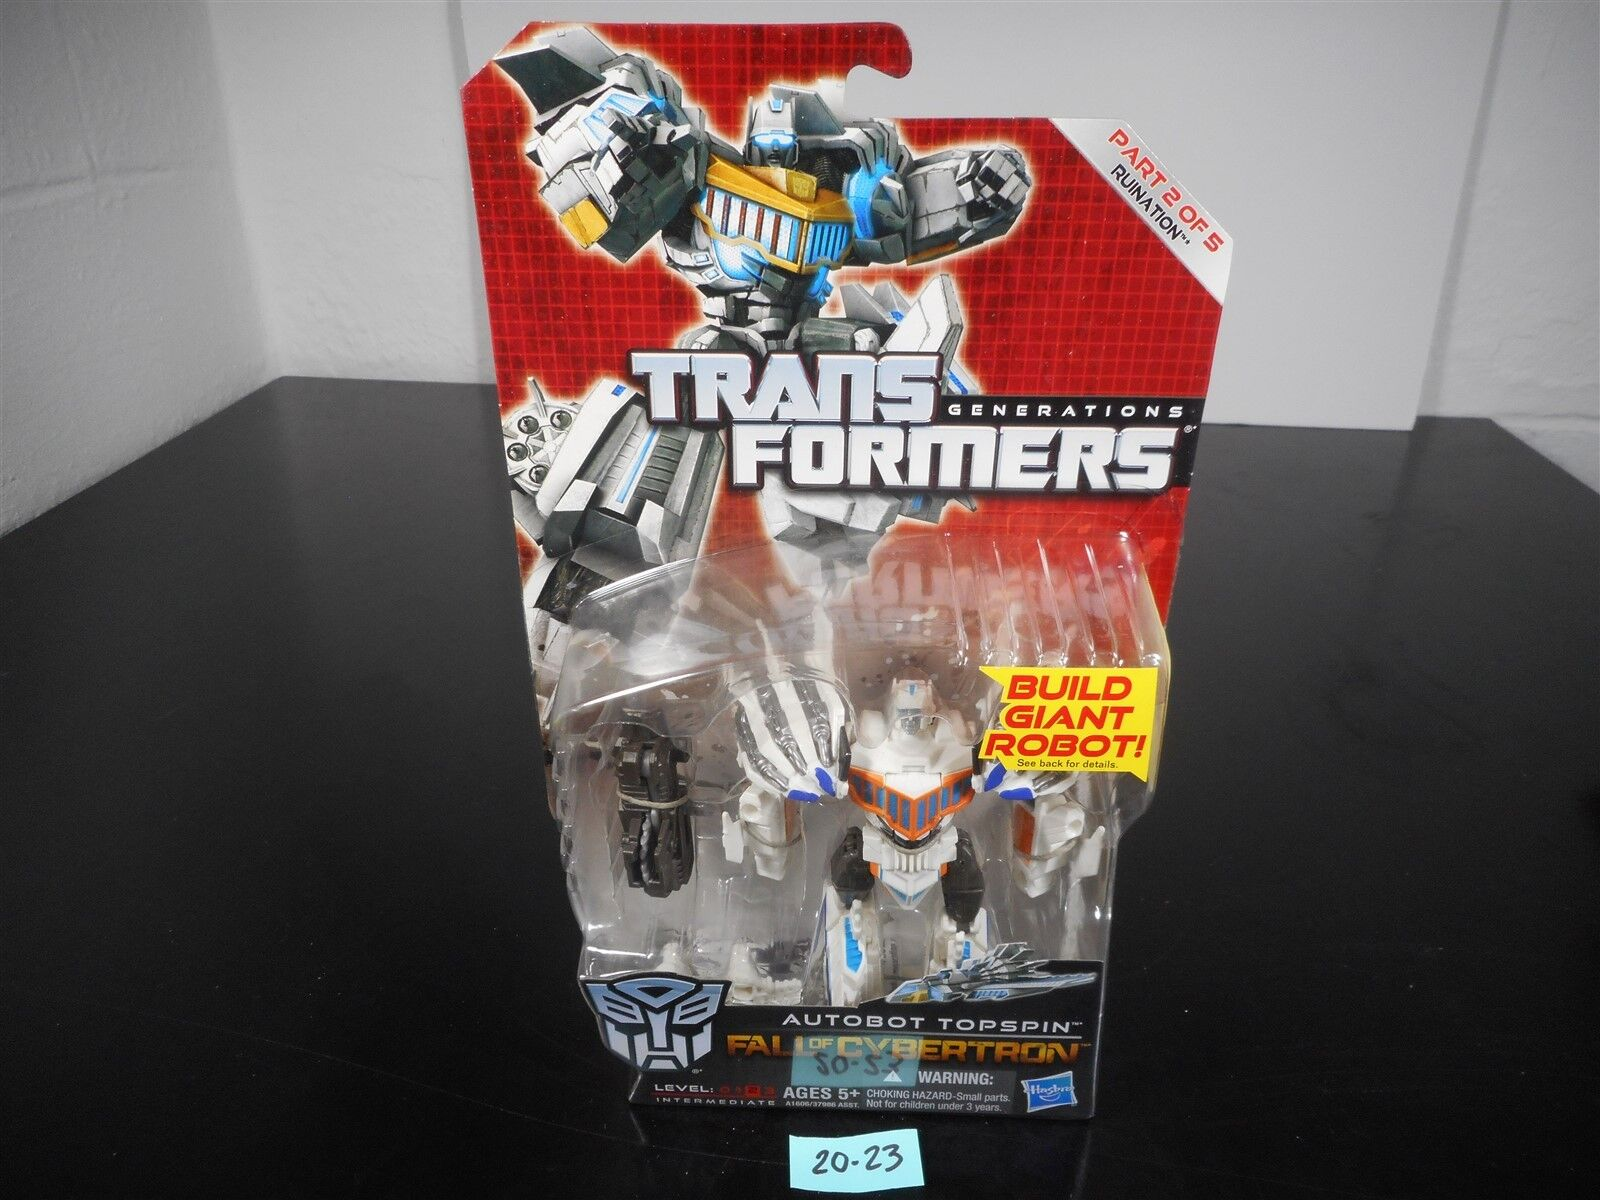 NEW & SEALED TRANSFORMERS GENERATIONS FOC AUTOBOT TOPSPIN RUINATION 2 OF 5 20-23